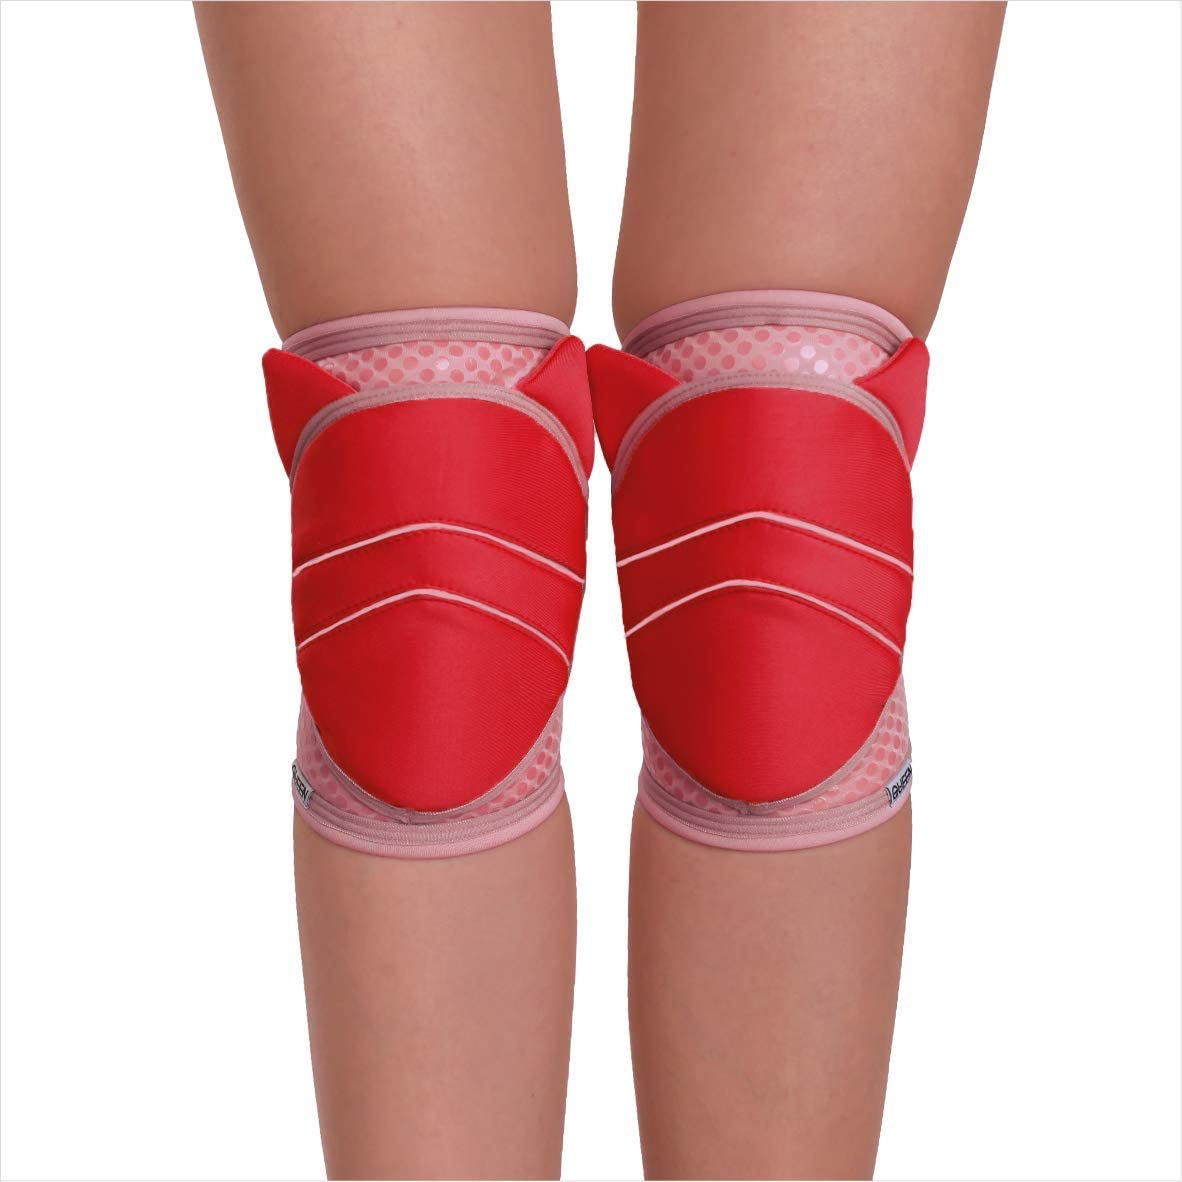 Pole Dance Knee Pads Queen Wear Natural Grip Perfect Woman Protection for Ballet Modern Dance and Indoor Sports